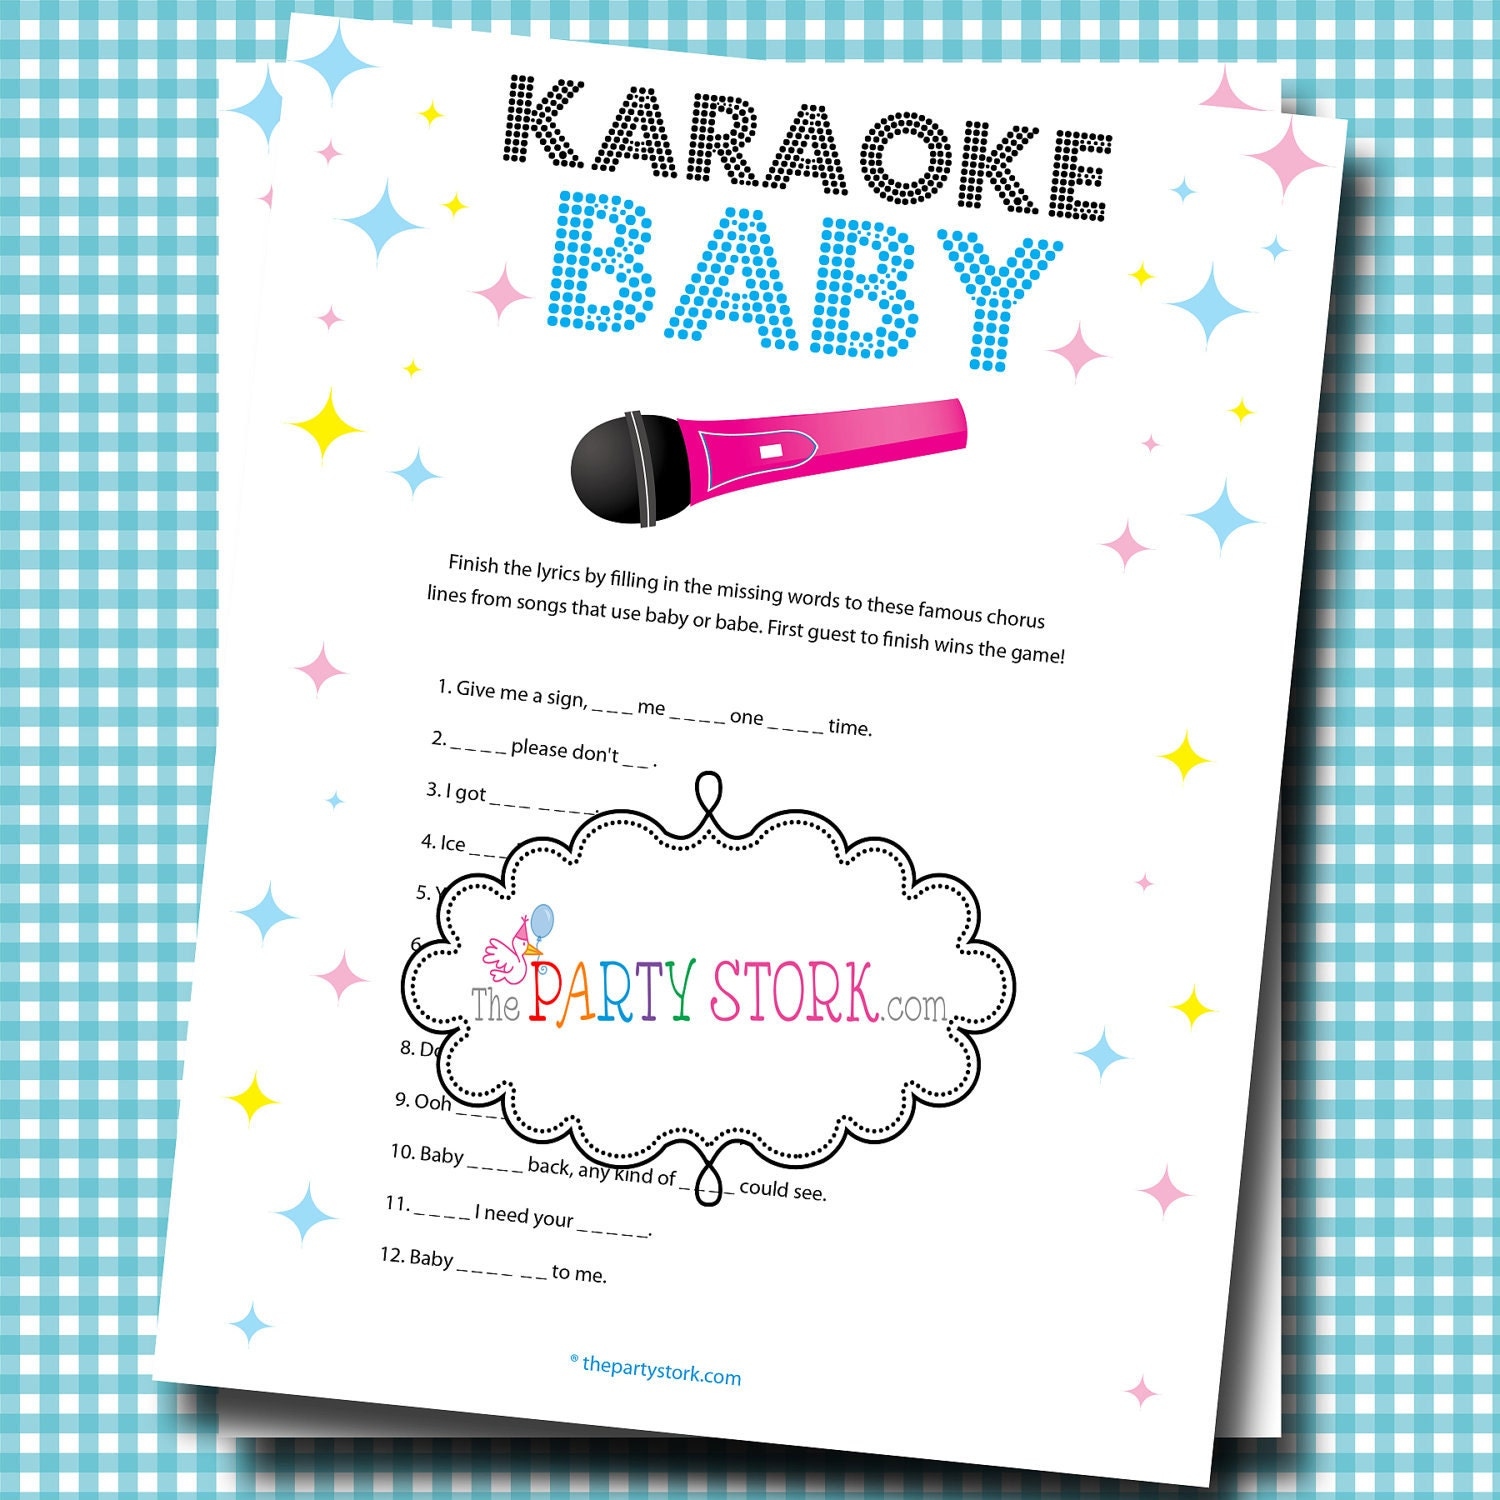 karaoke baby shower game printable games by the party stork ideas